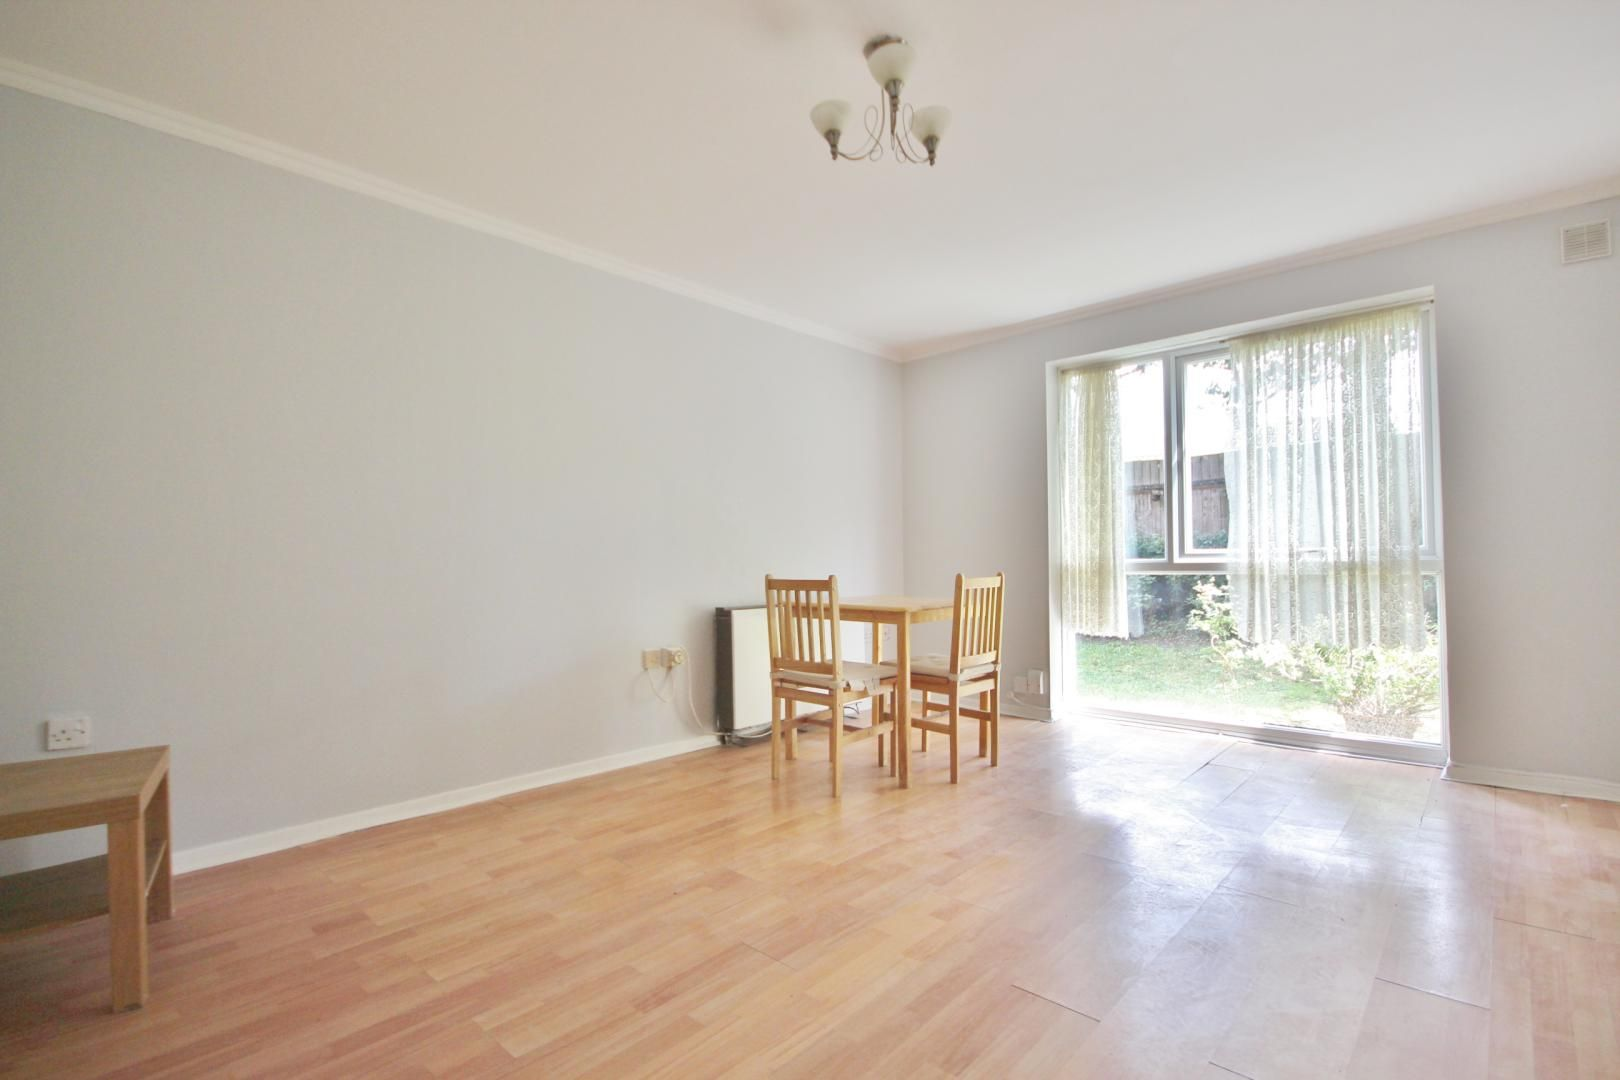 2 bed flat for sale in Meads Court - Property Image 1